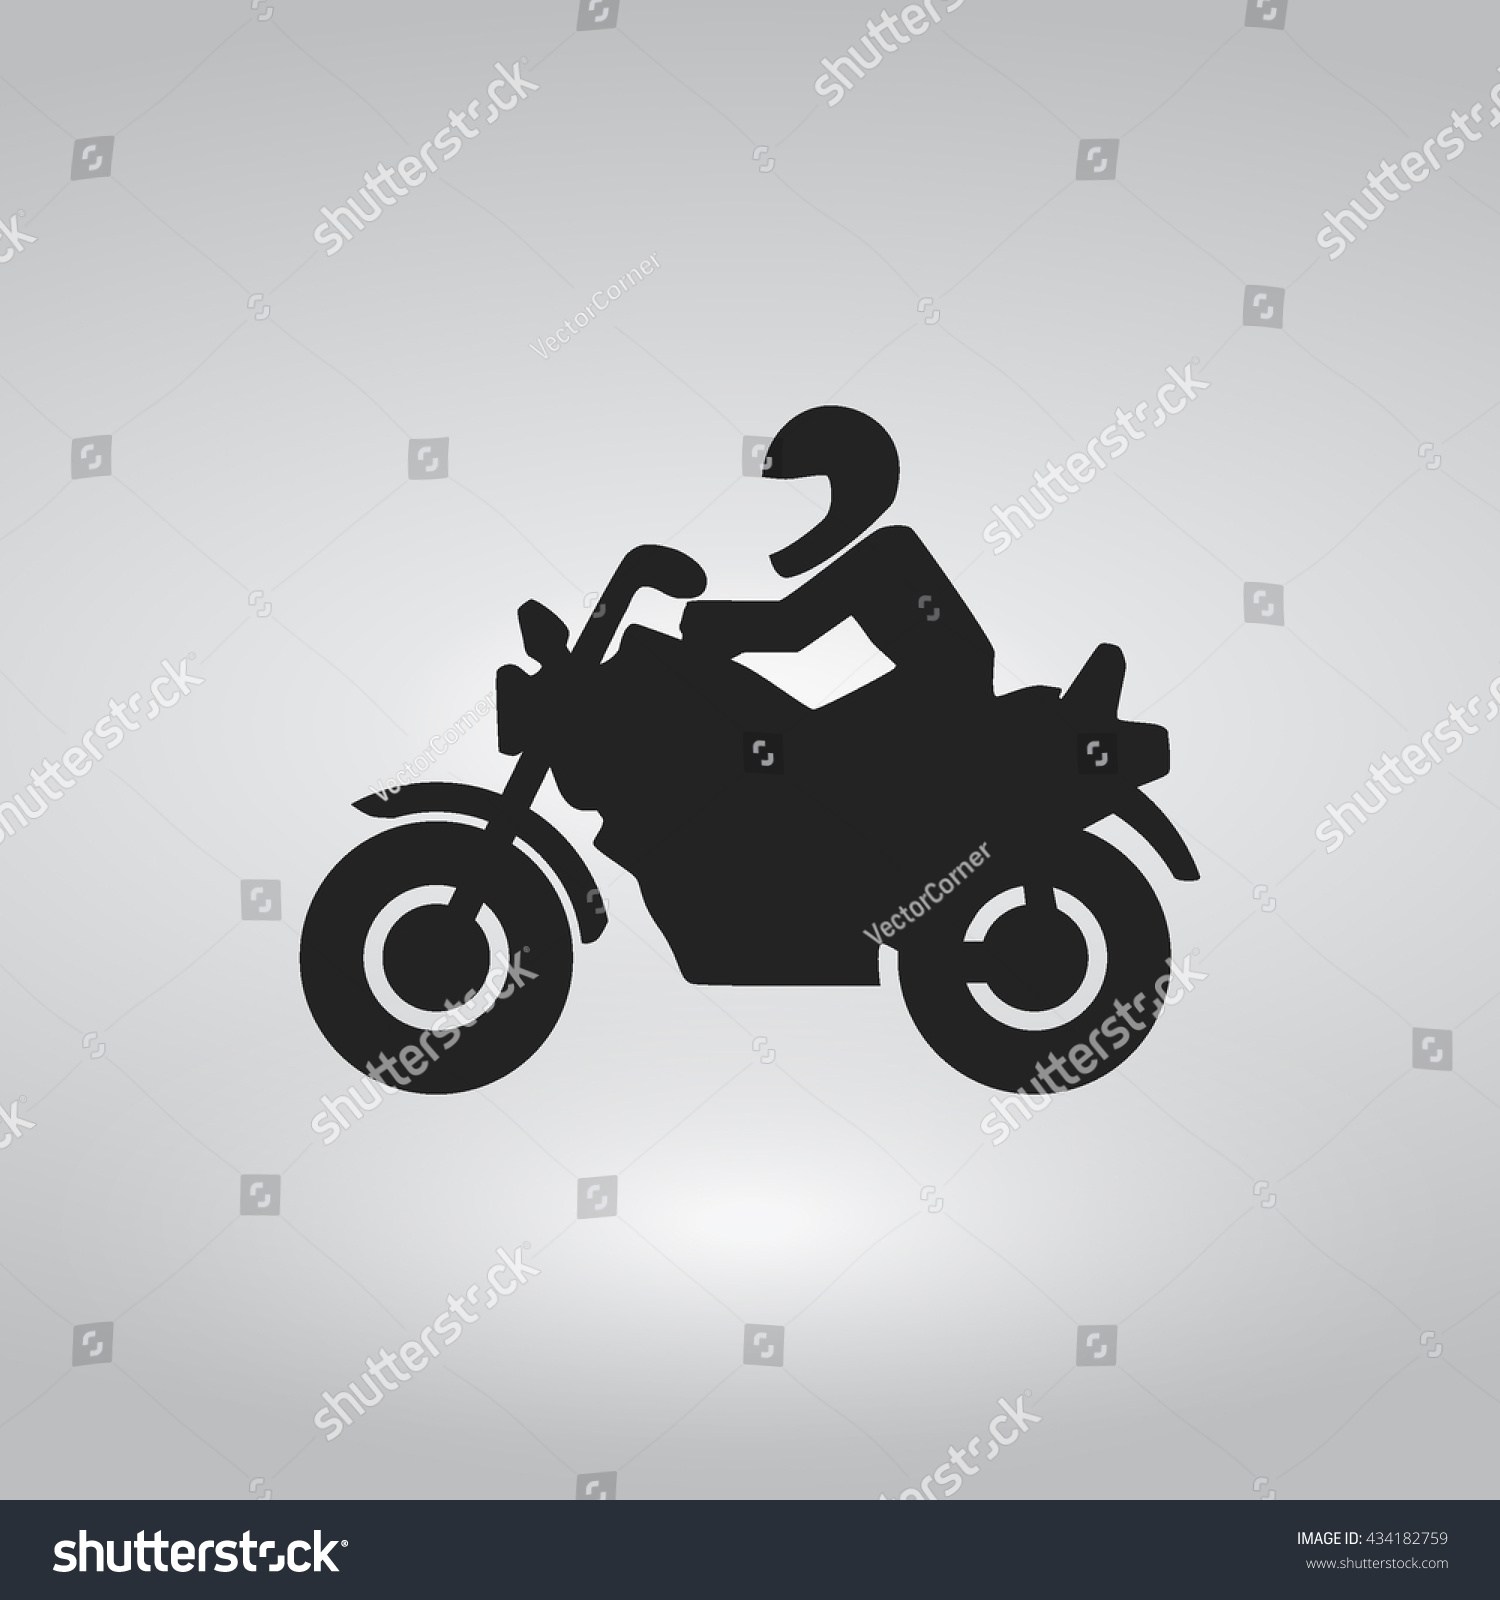 Simple Motorcycle Flat Icon Riding Motor Stock Vector HD (Royalty ...